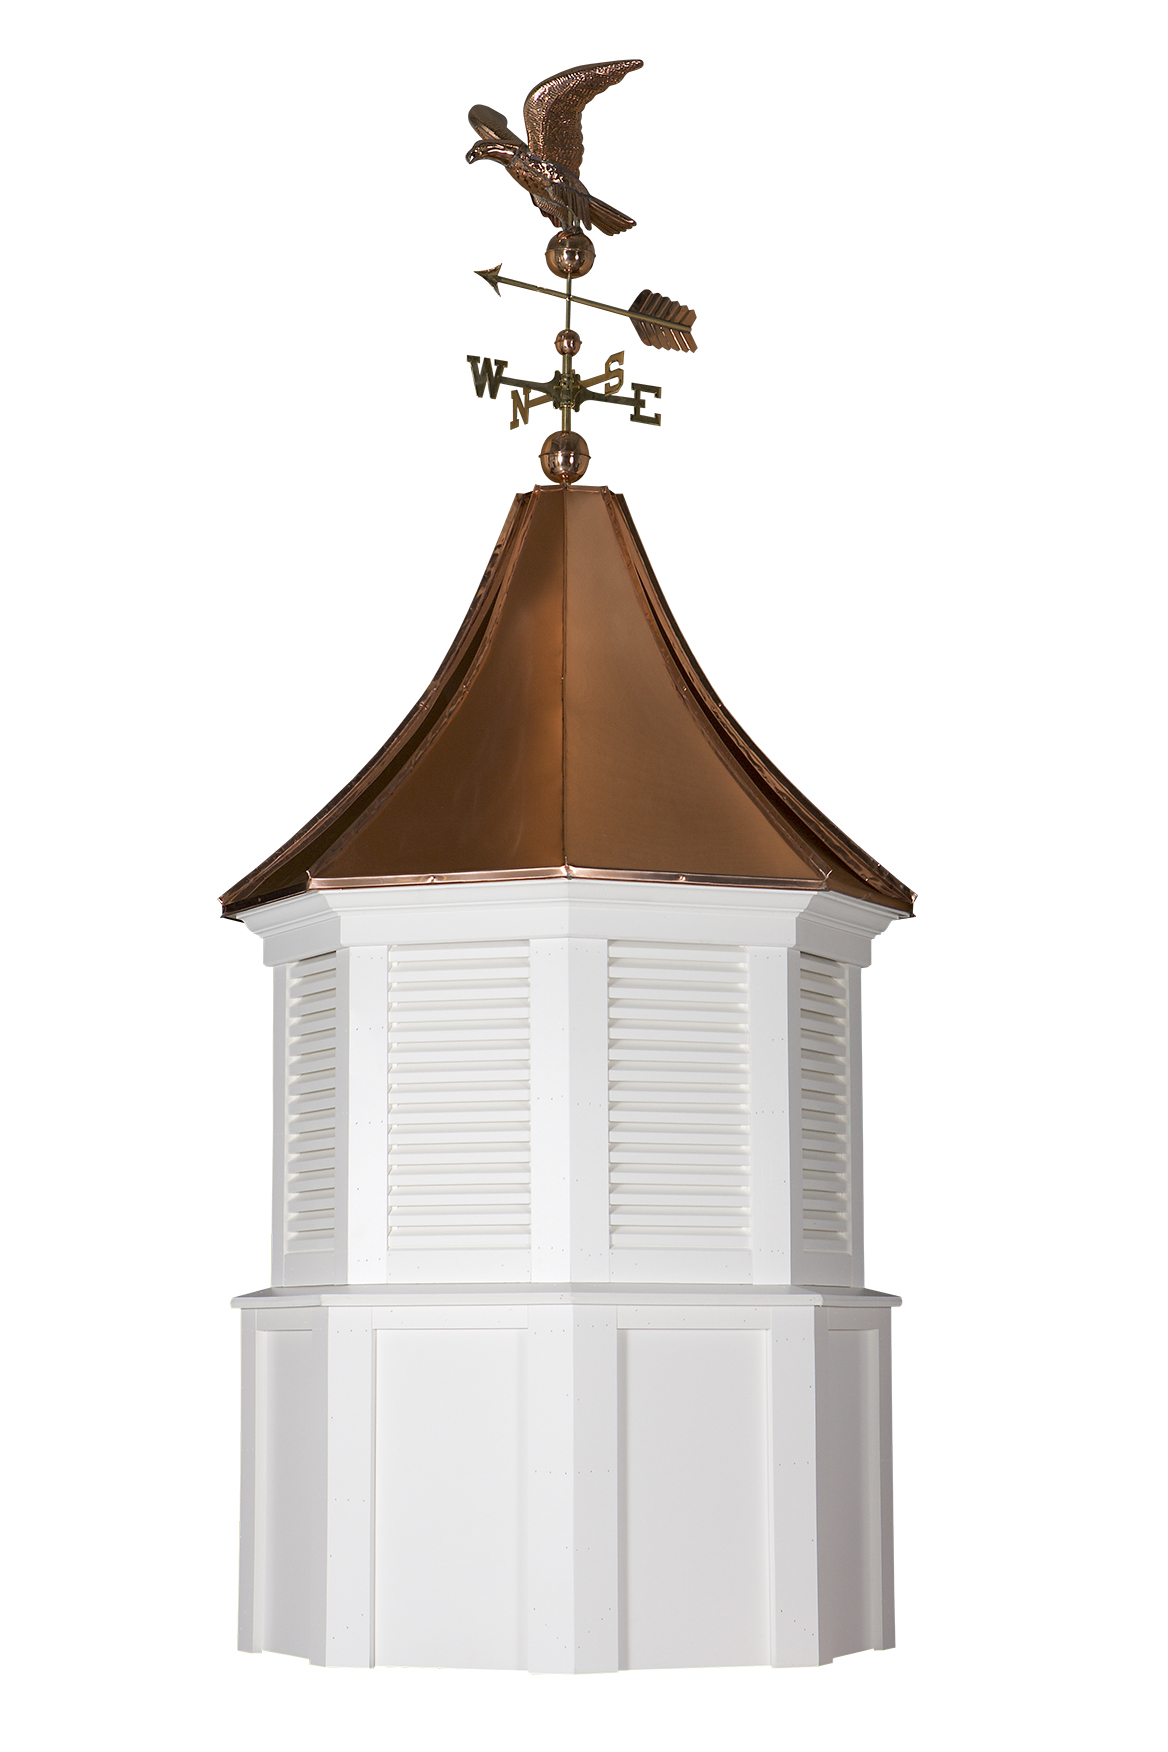 standford cupola with weathervane and finial